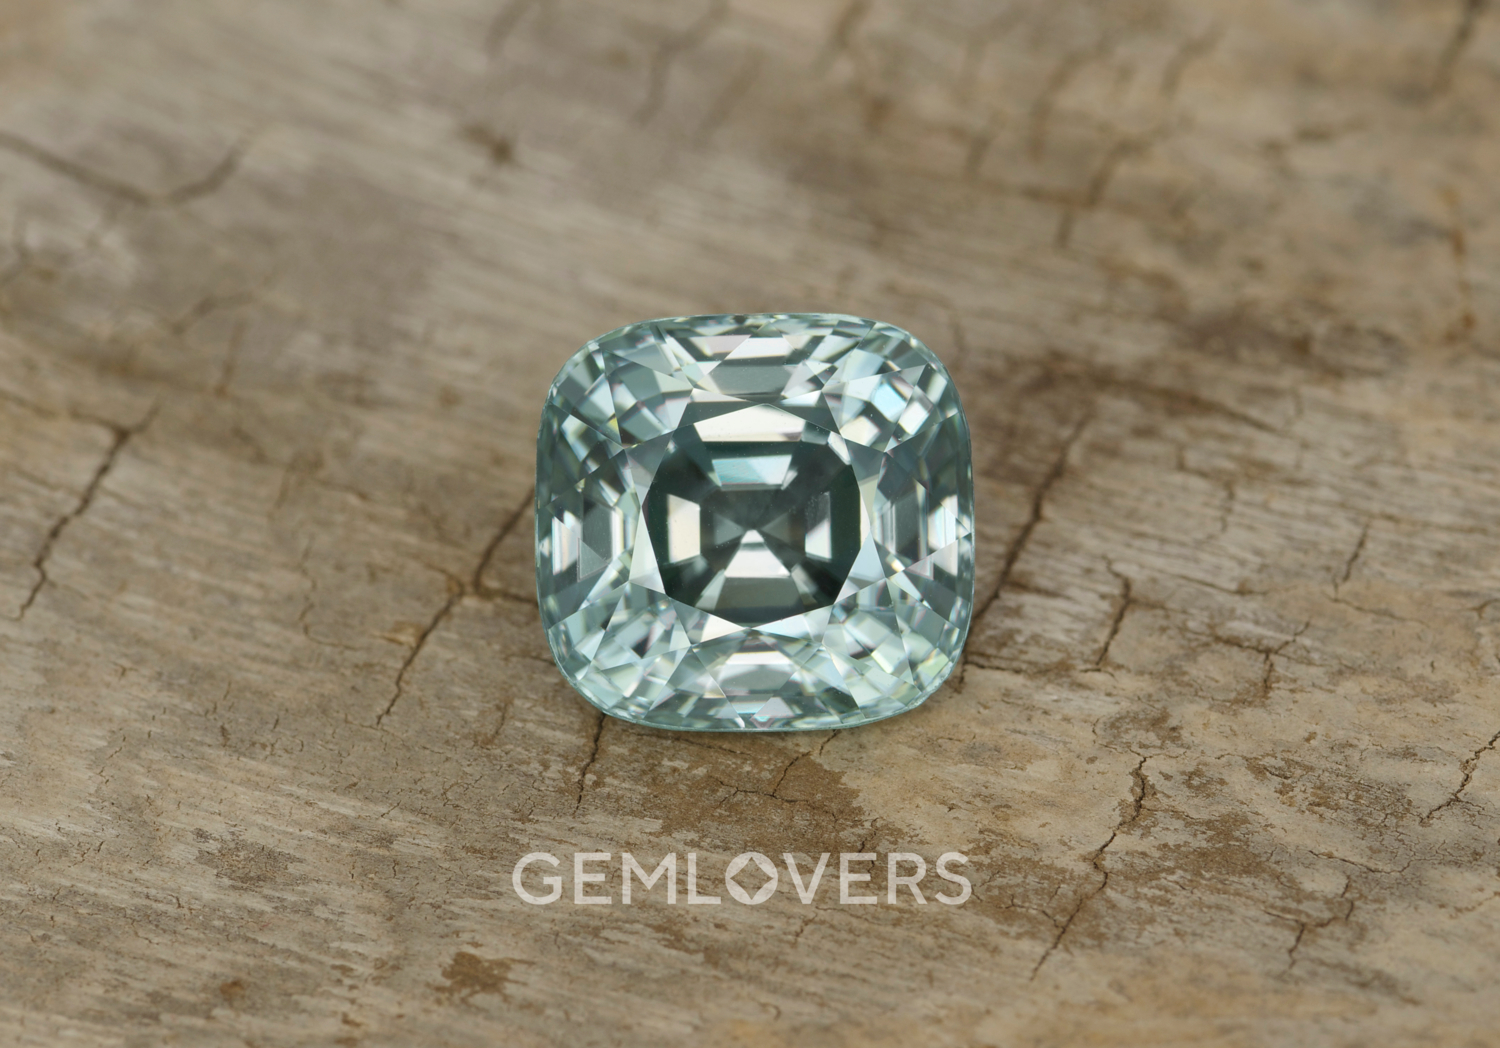 Zircon with color change effect